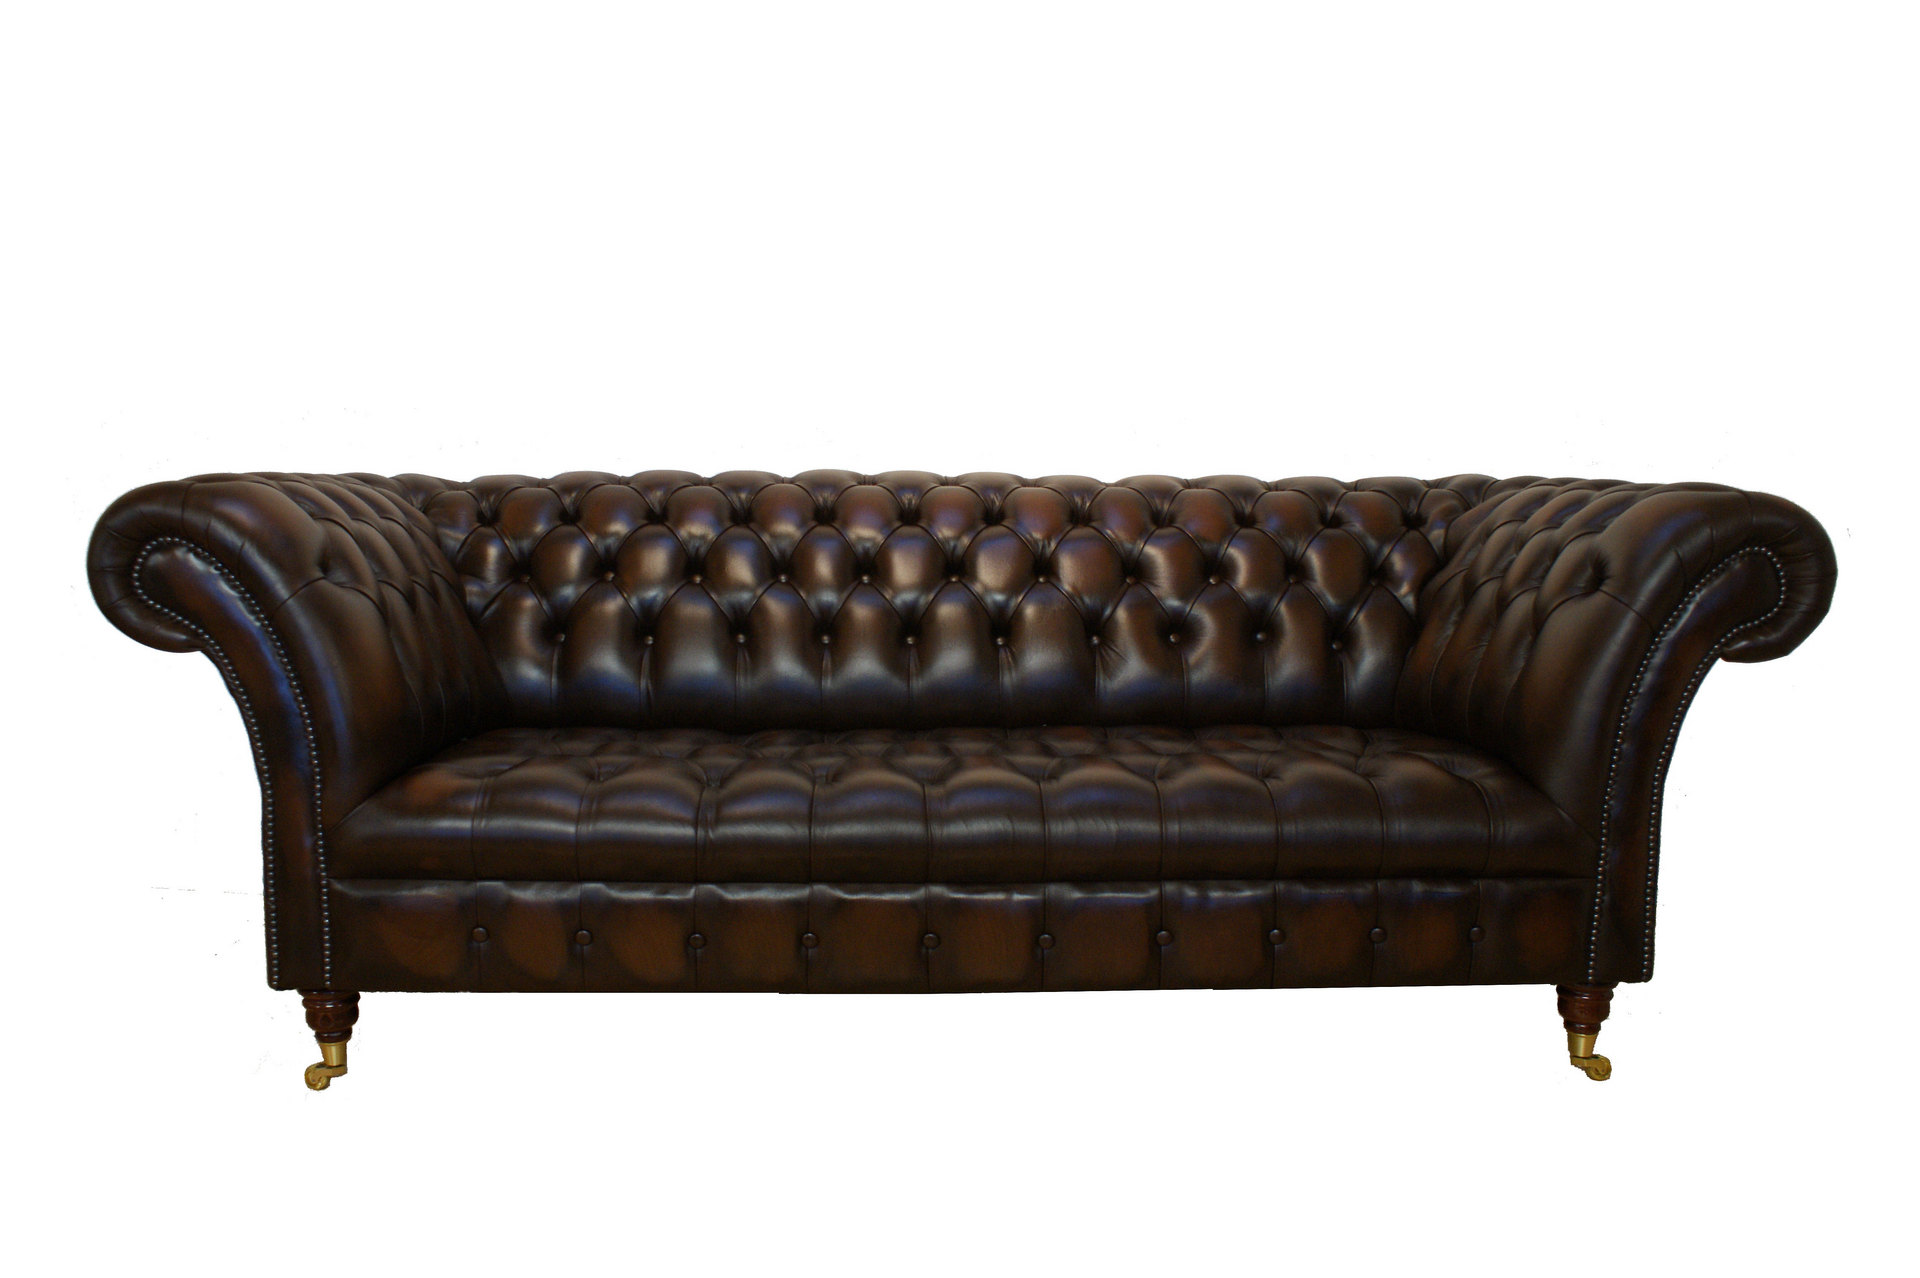 Chesterfield sofas january 2011 Leather chesterfield loveseat